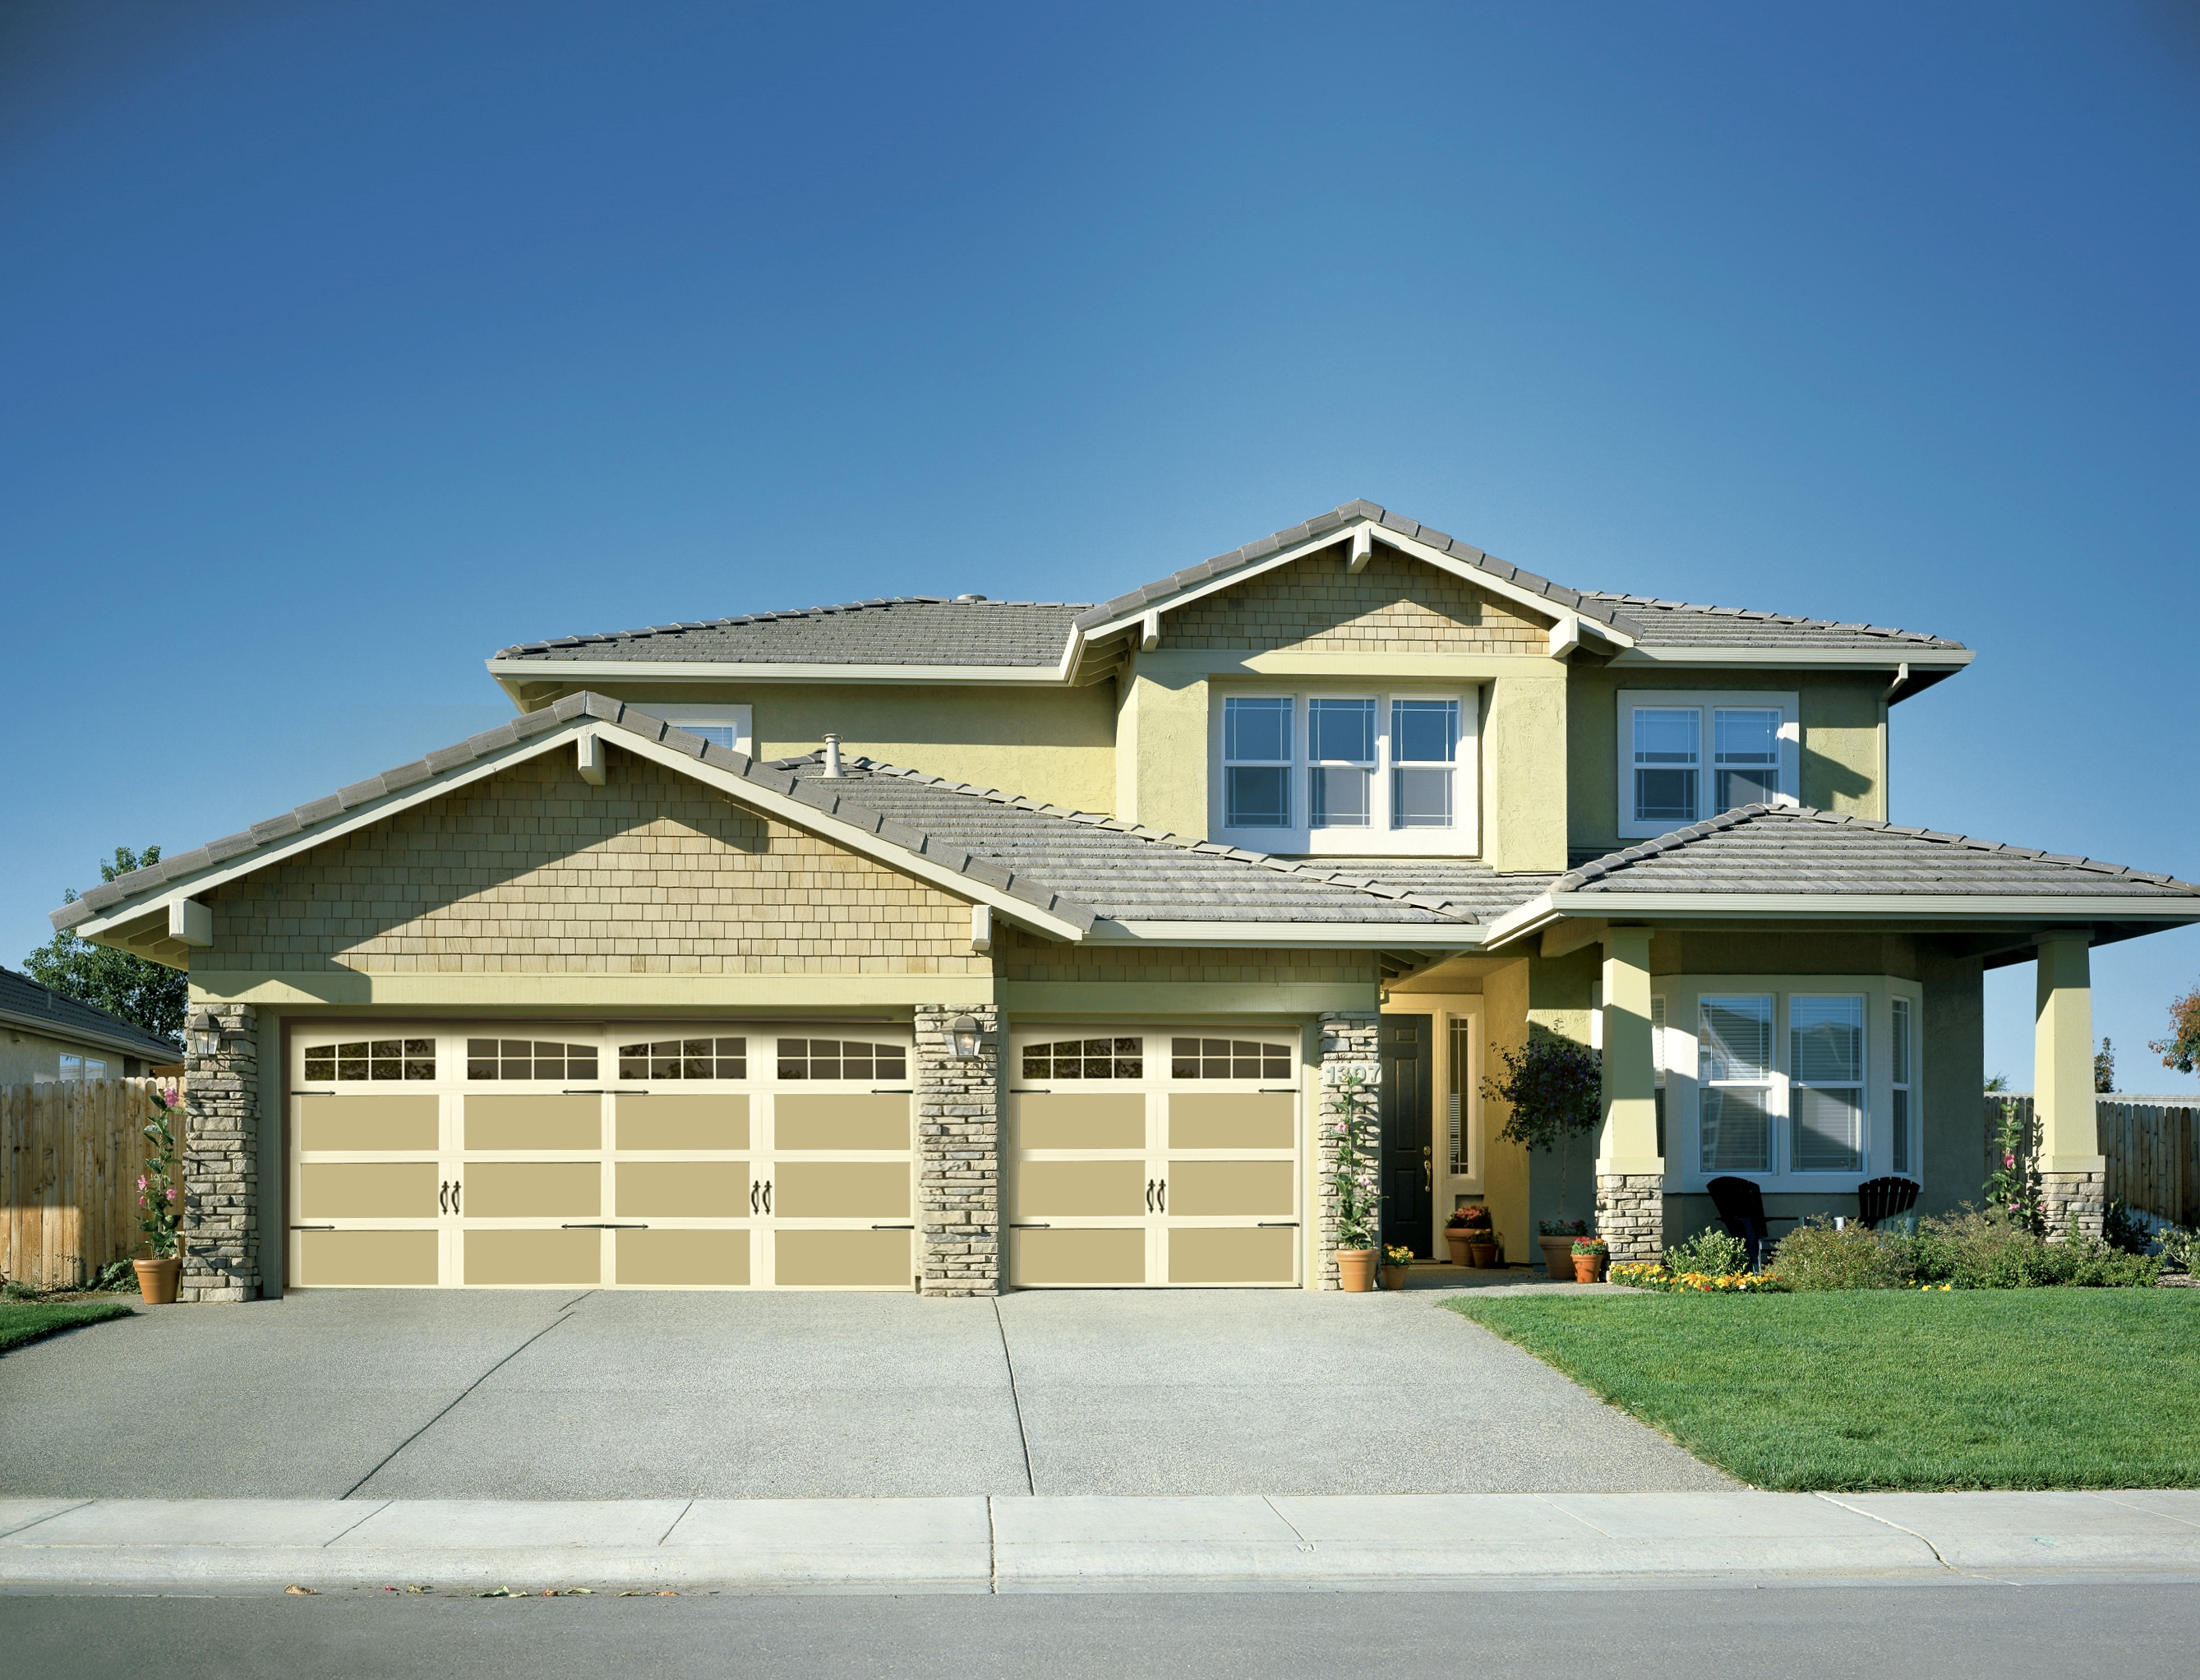 Quick Garage Improvements To Fast Track Your House Flipping Overhead Door Company Of Western